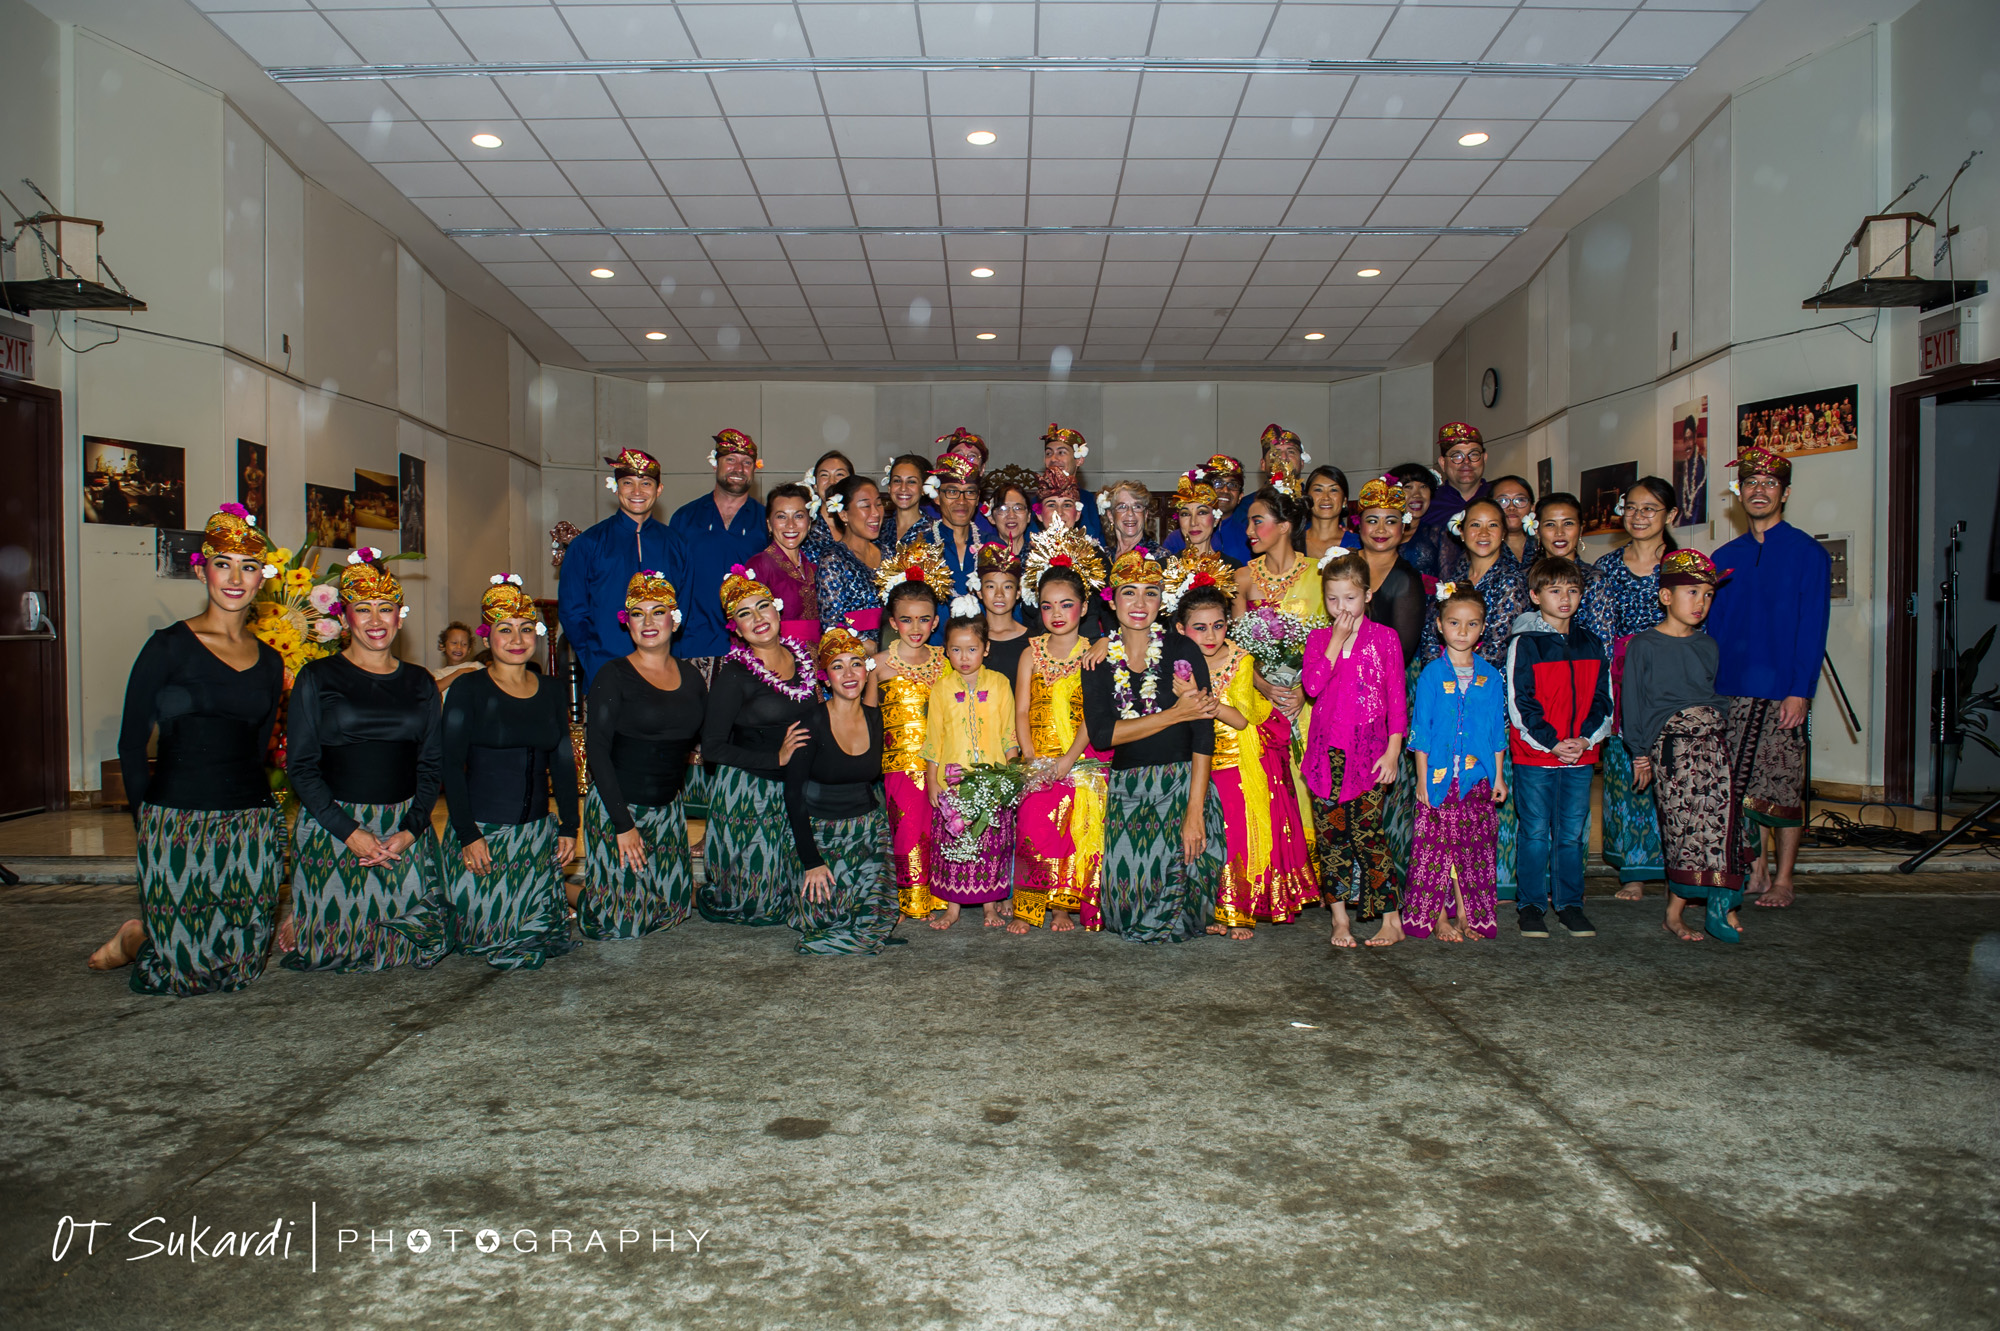 group photo of all performers